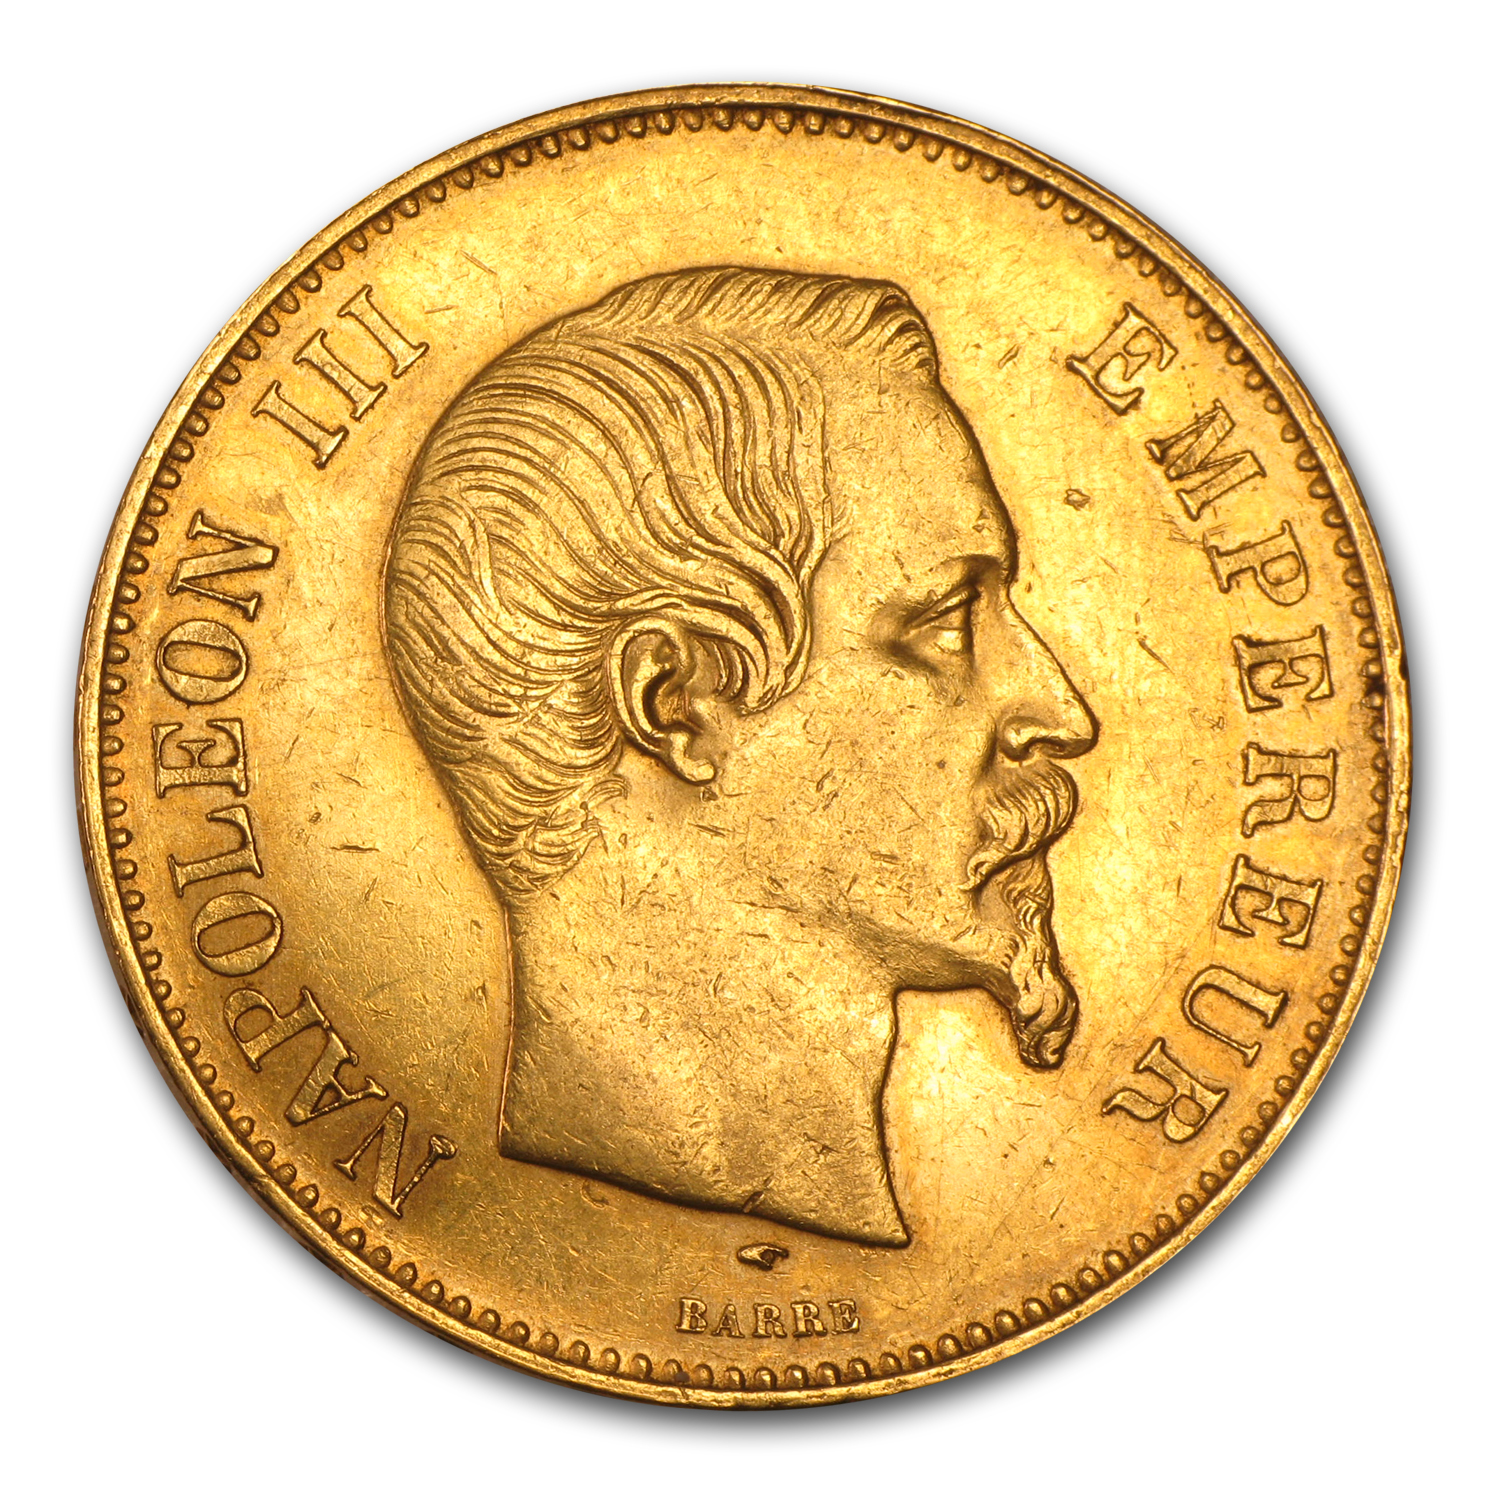 1855-1859 France Gold 100 Francs Napoleon III Avg Circ